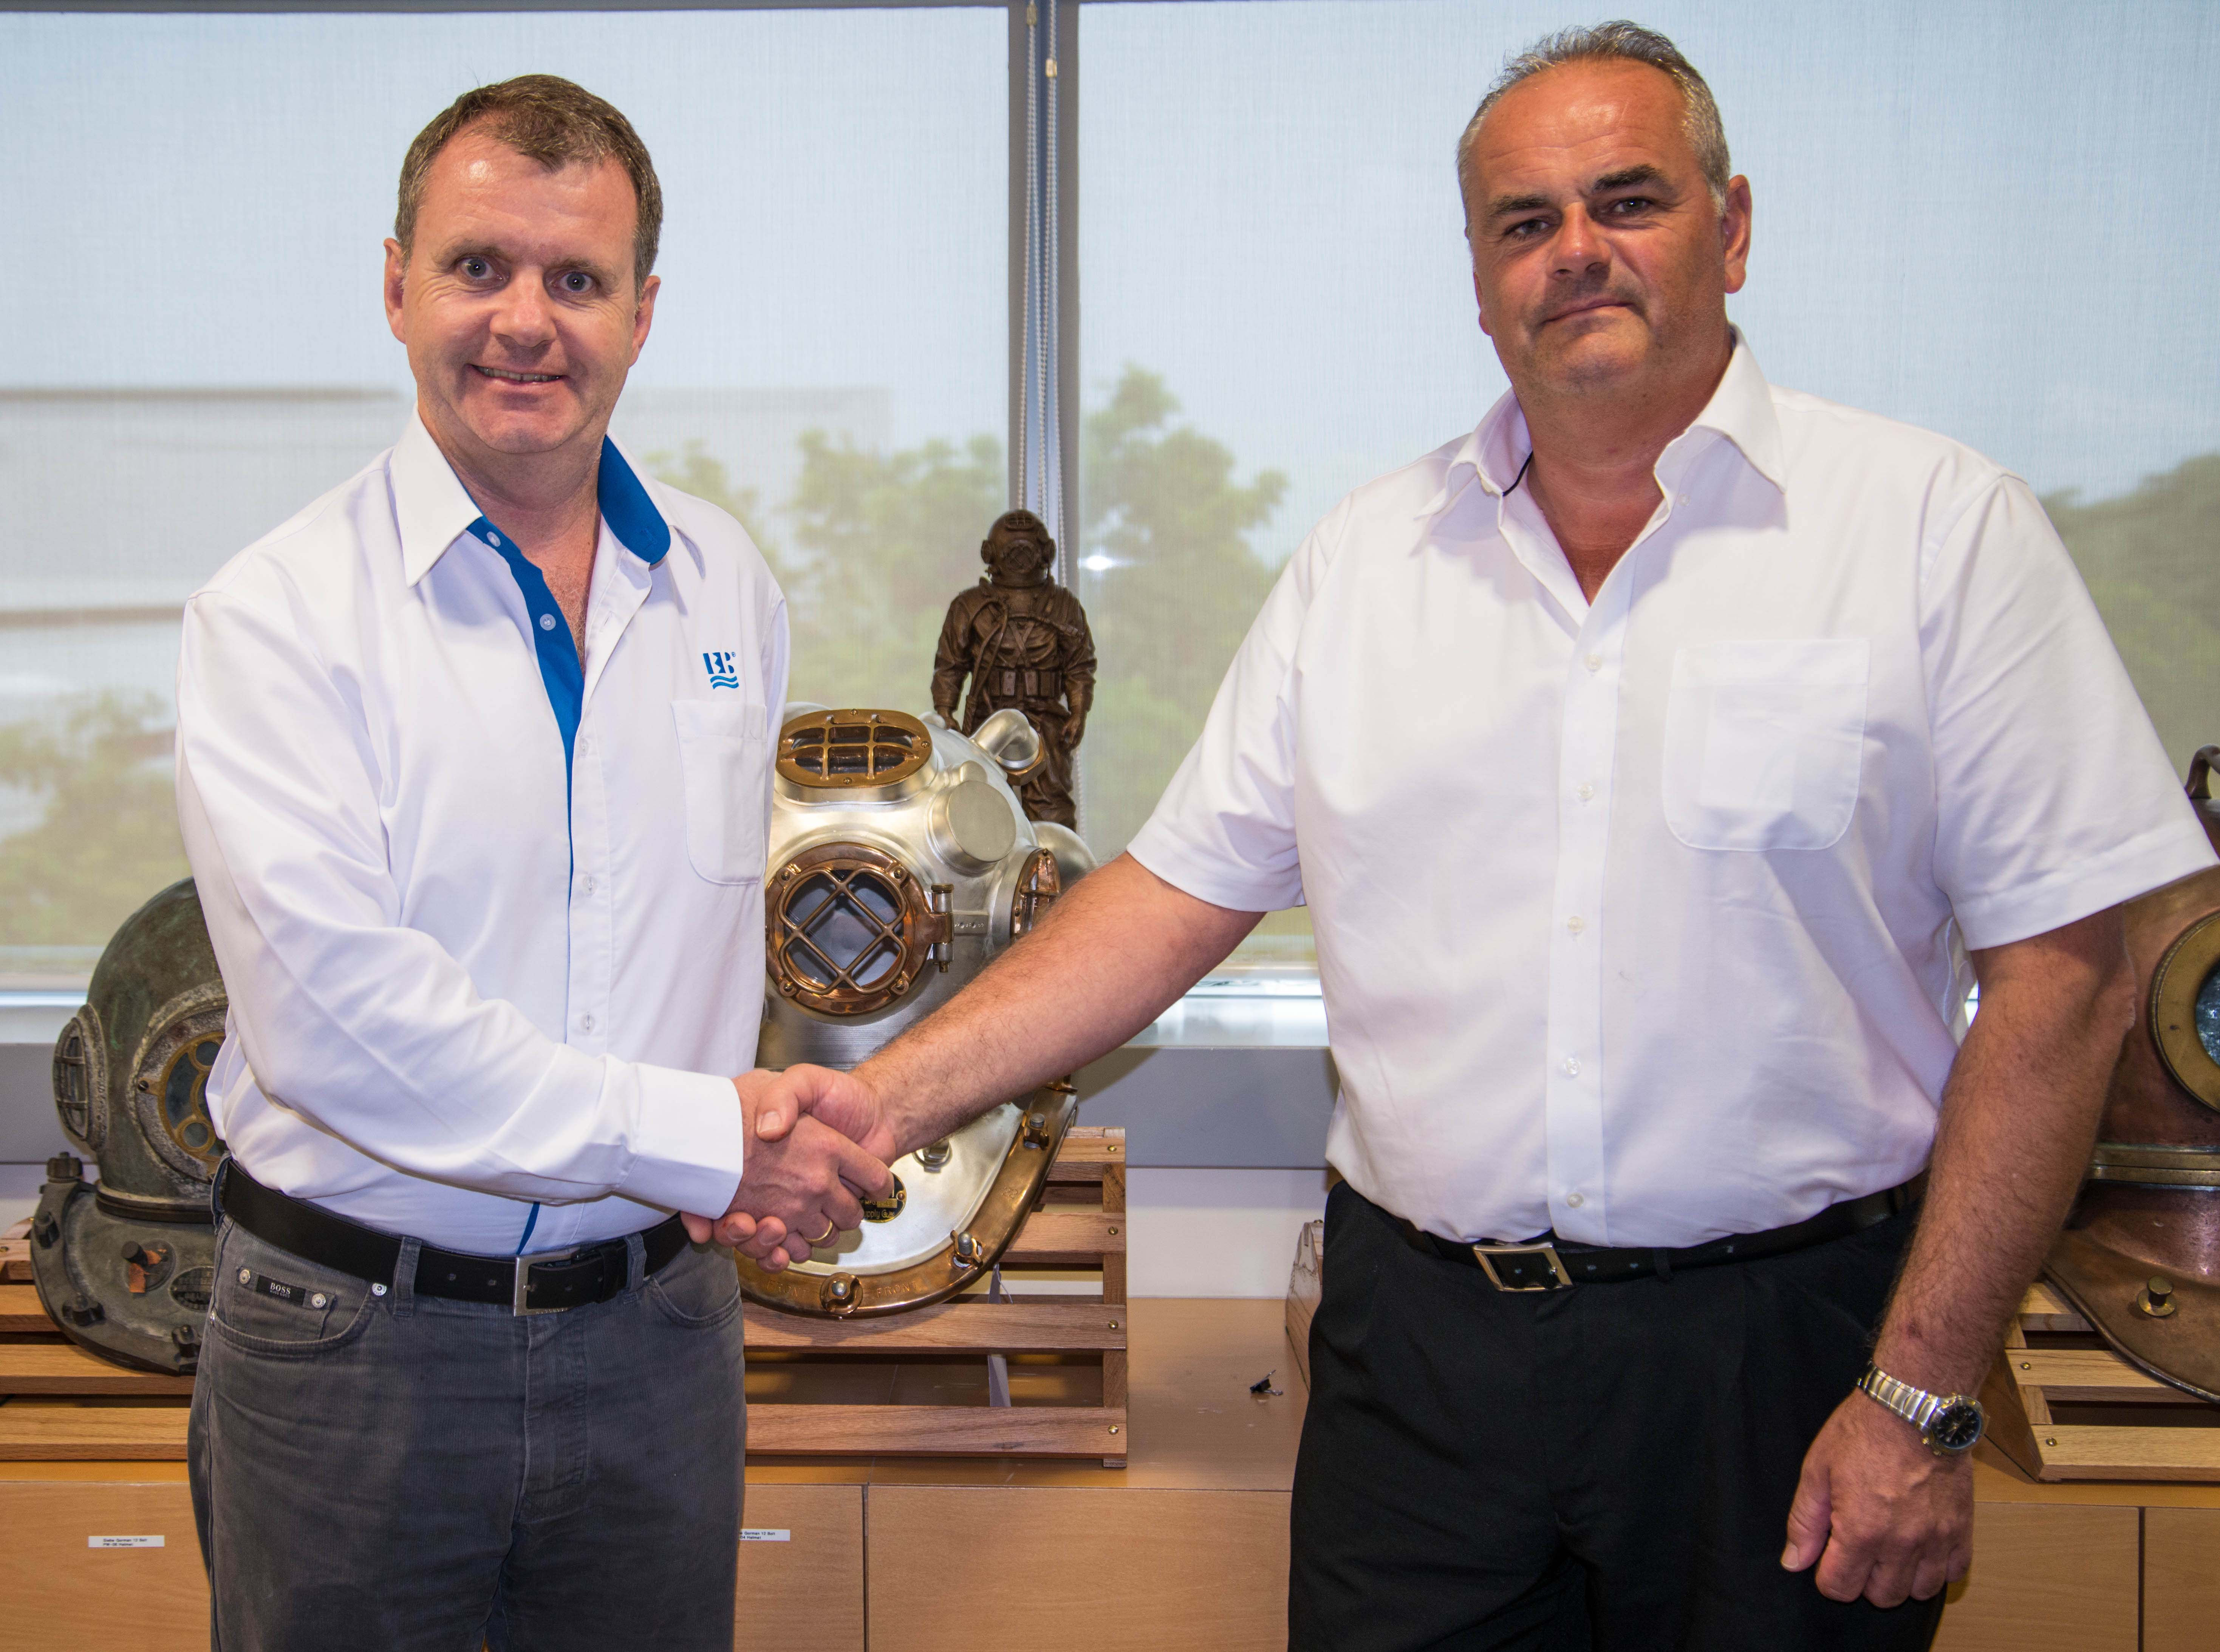 Diver Safety is Paramount says New Partnership KB Associates & MTCS Ltd